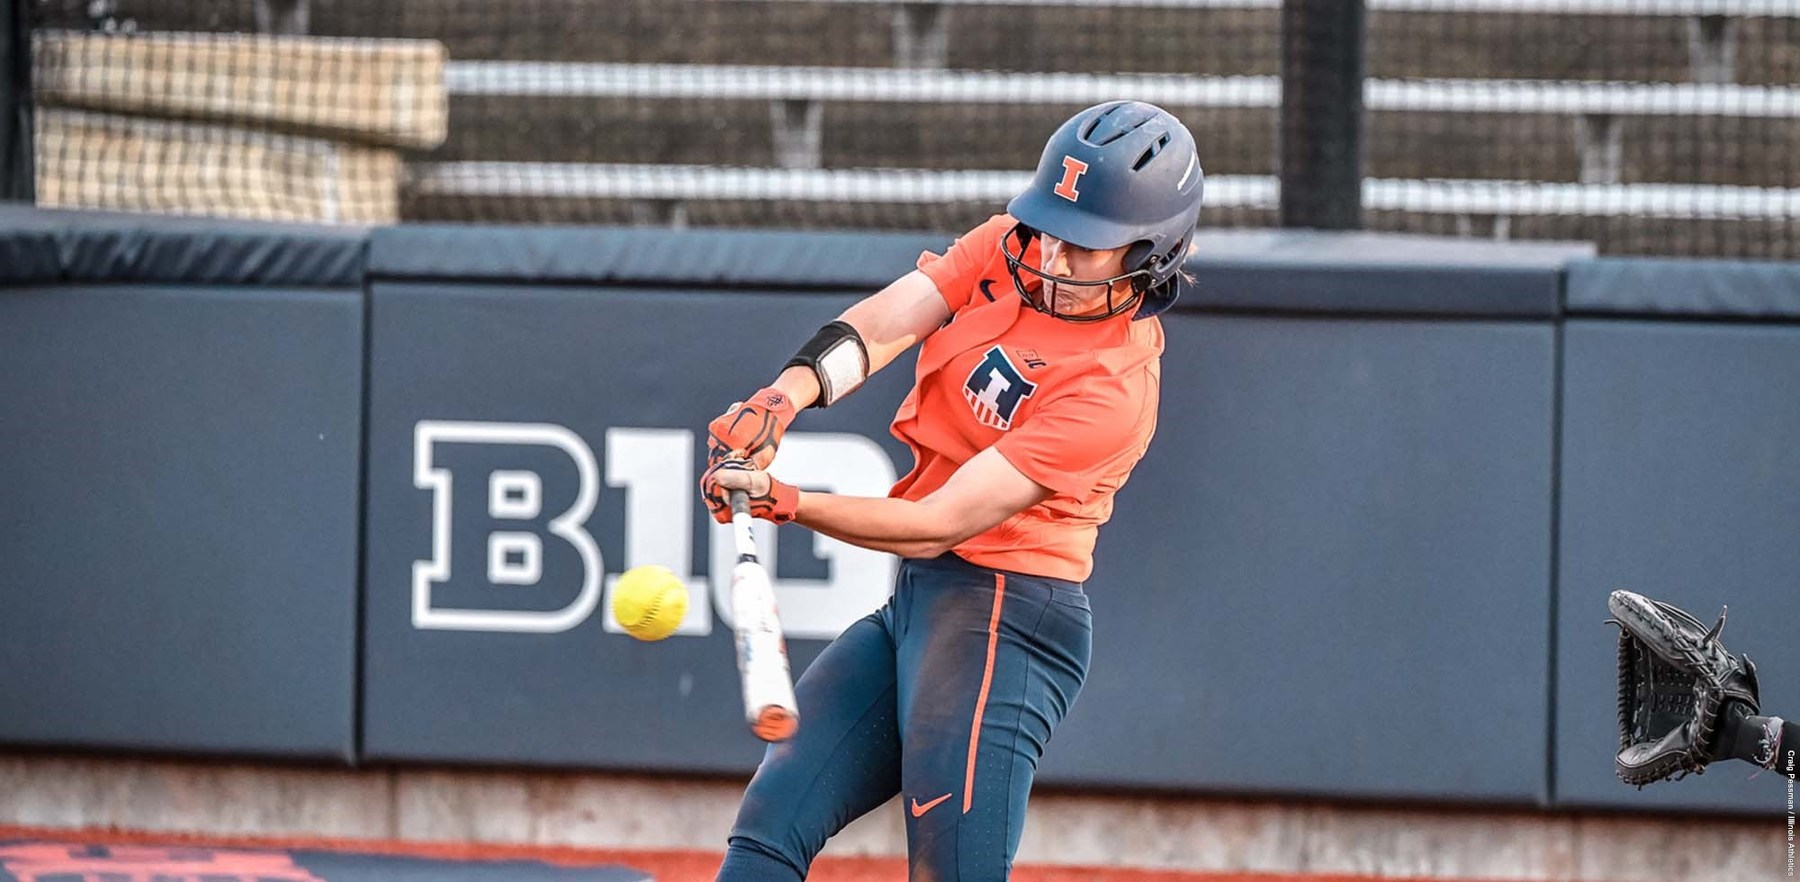 unidentified Illini batter puts a powerful swing on the ball